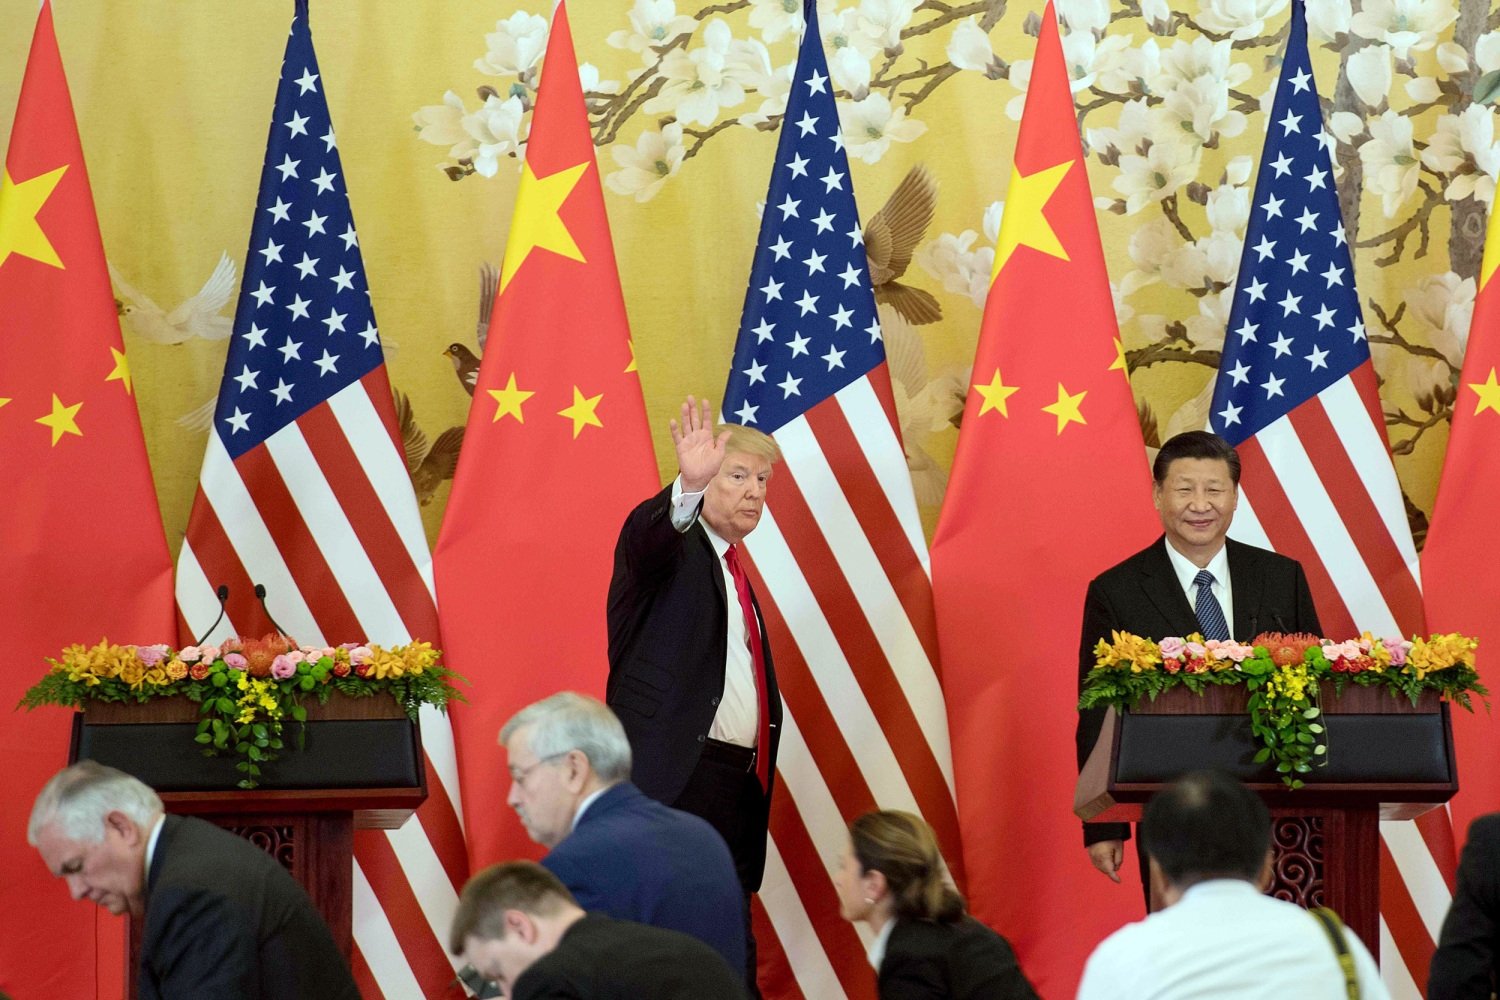 Breaking With Precedent, Trump Refuses Media Questions In China